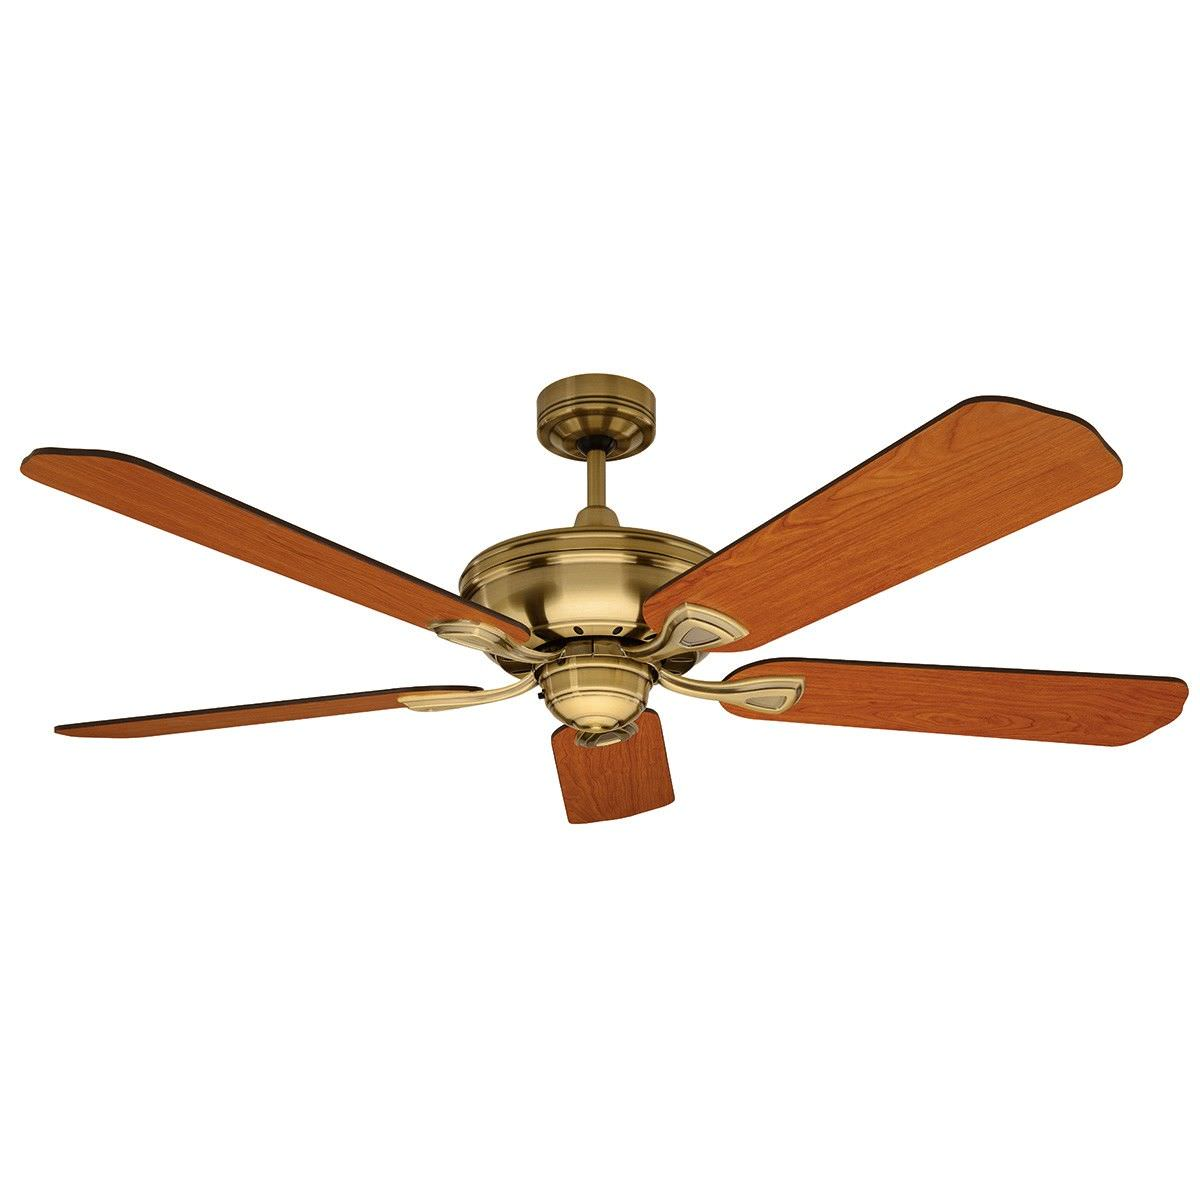 Healey timber ceiling fan 130cm52 antique brass healey timber ceiling fan 130cm52 antique brass aloadofball Choice Image